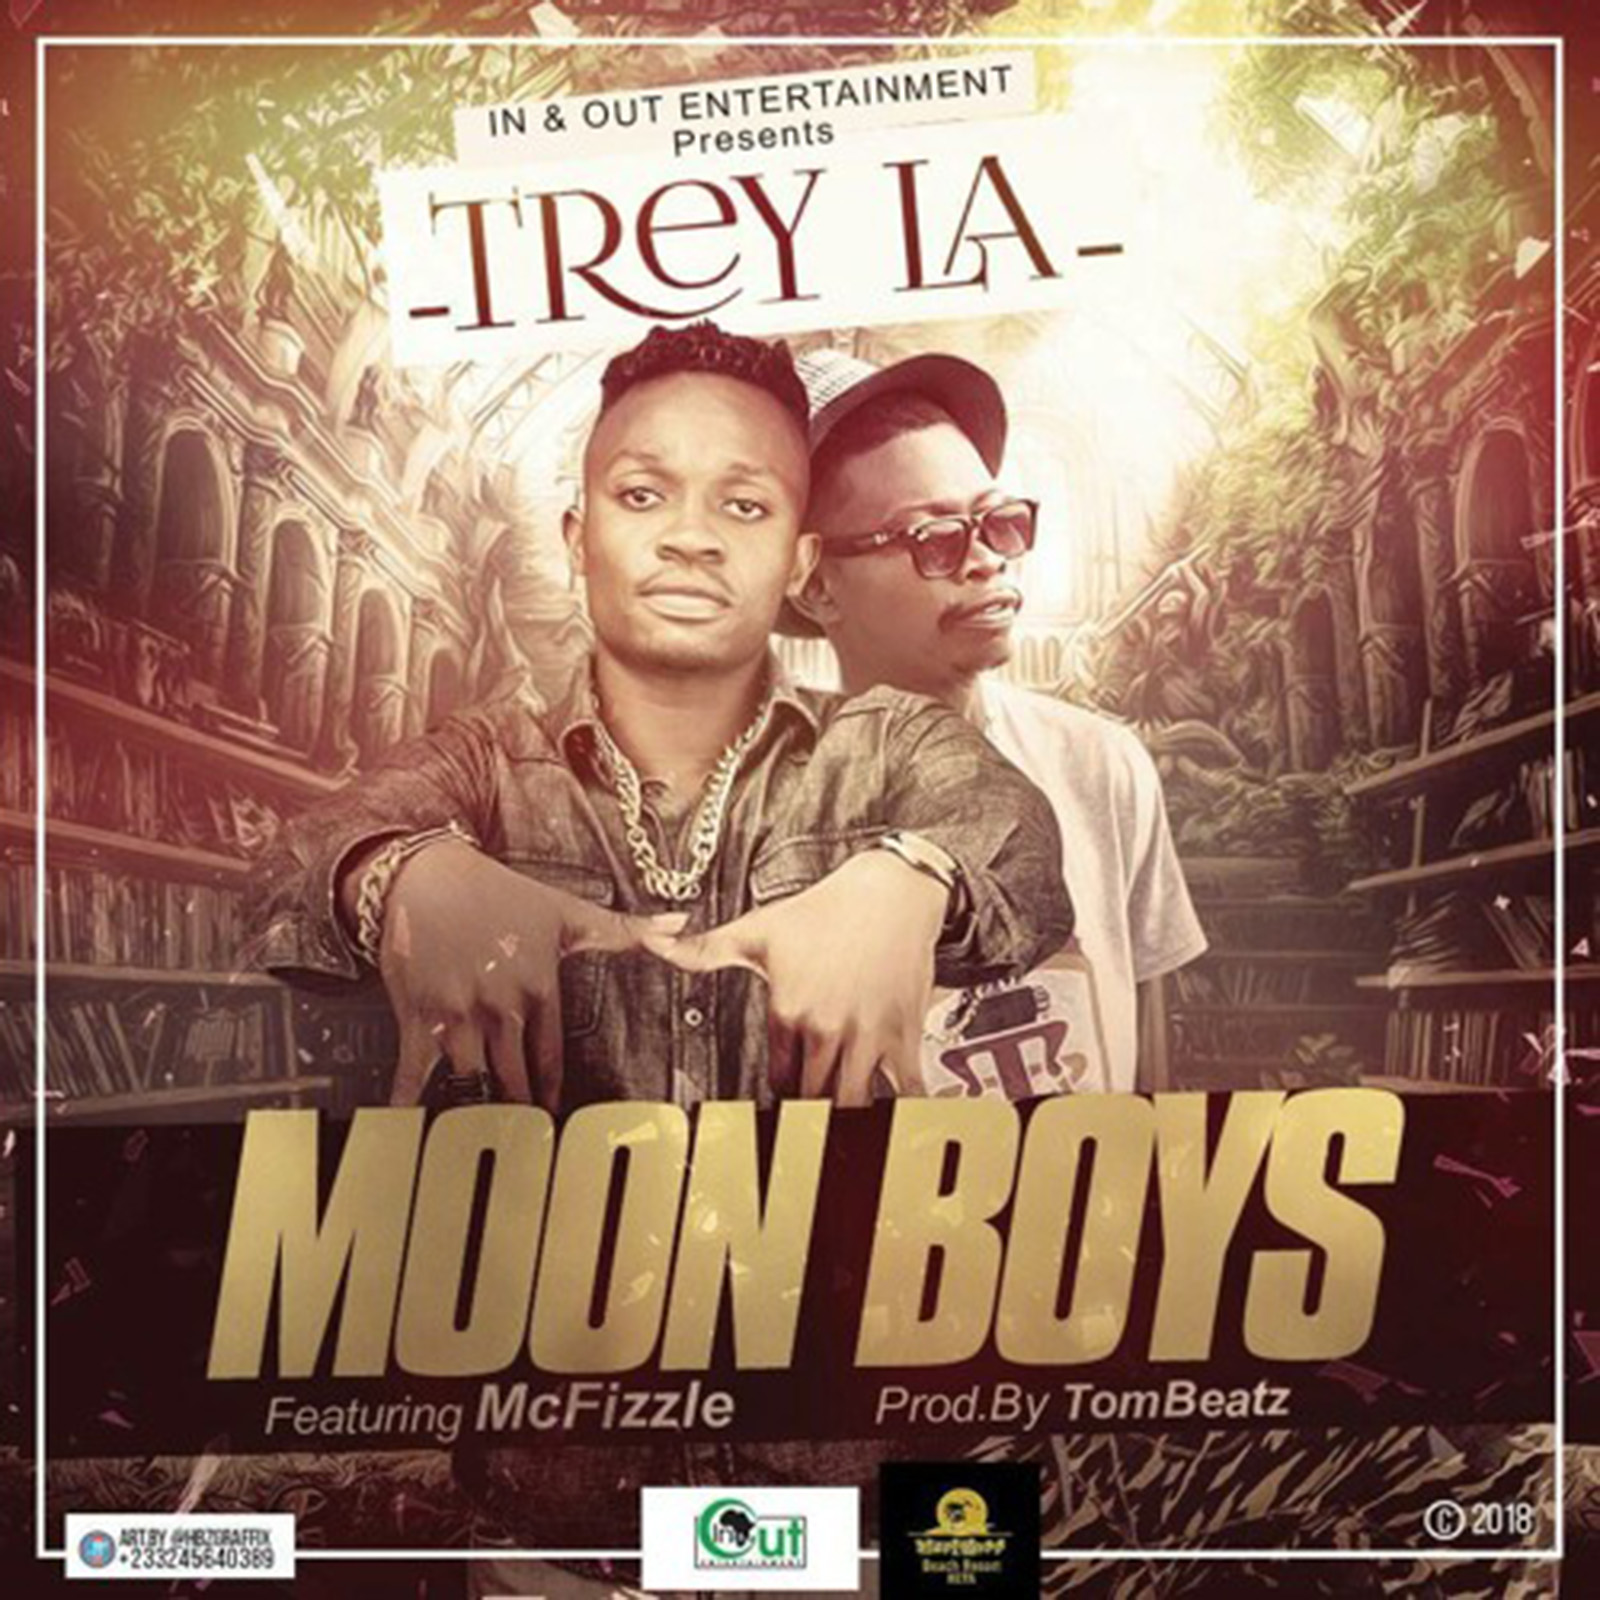 Moon Boys by Trey LA feat. McFizzle